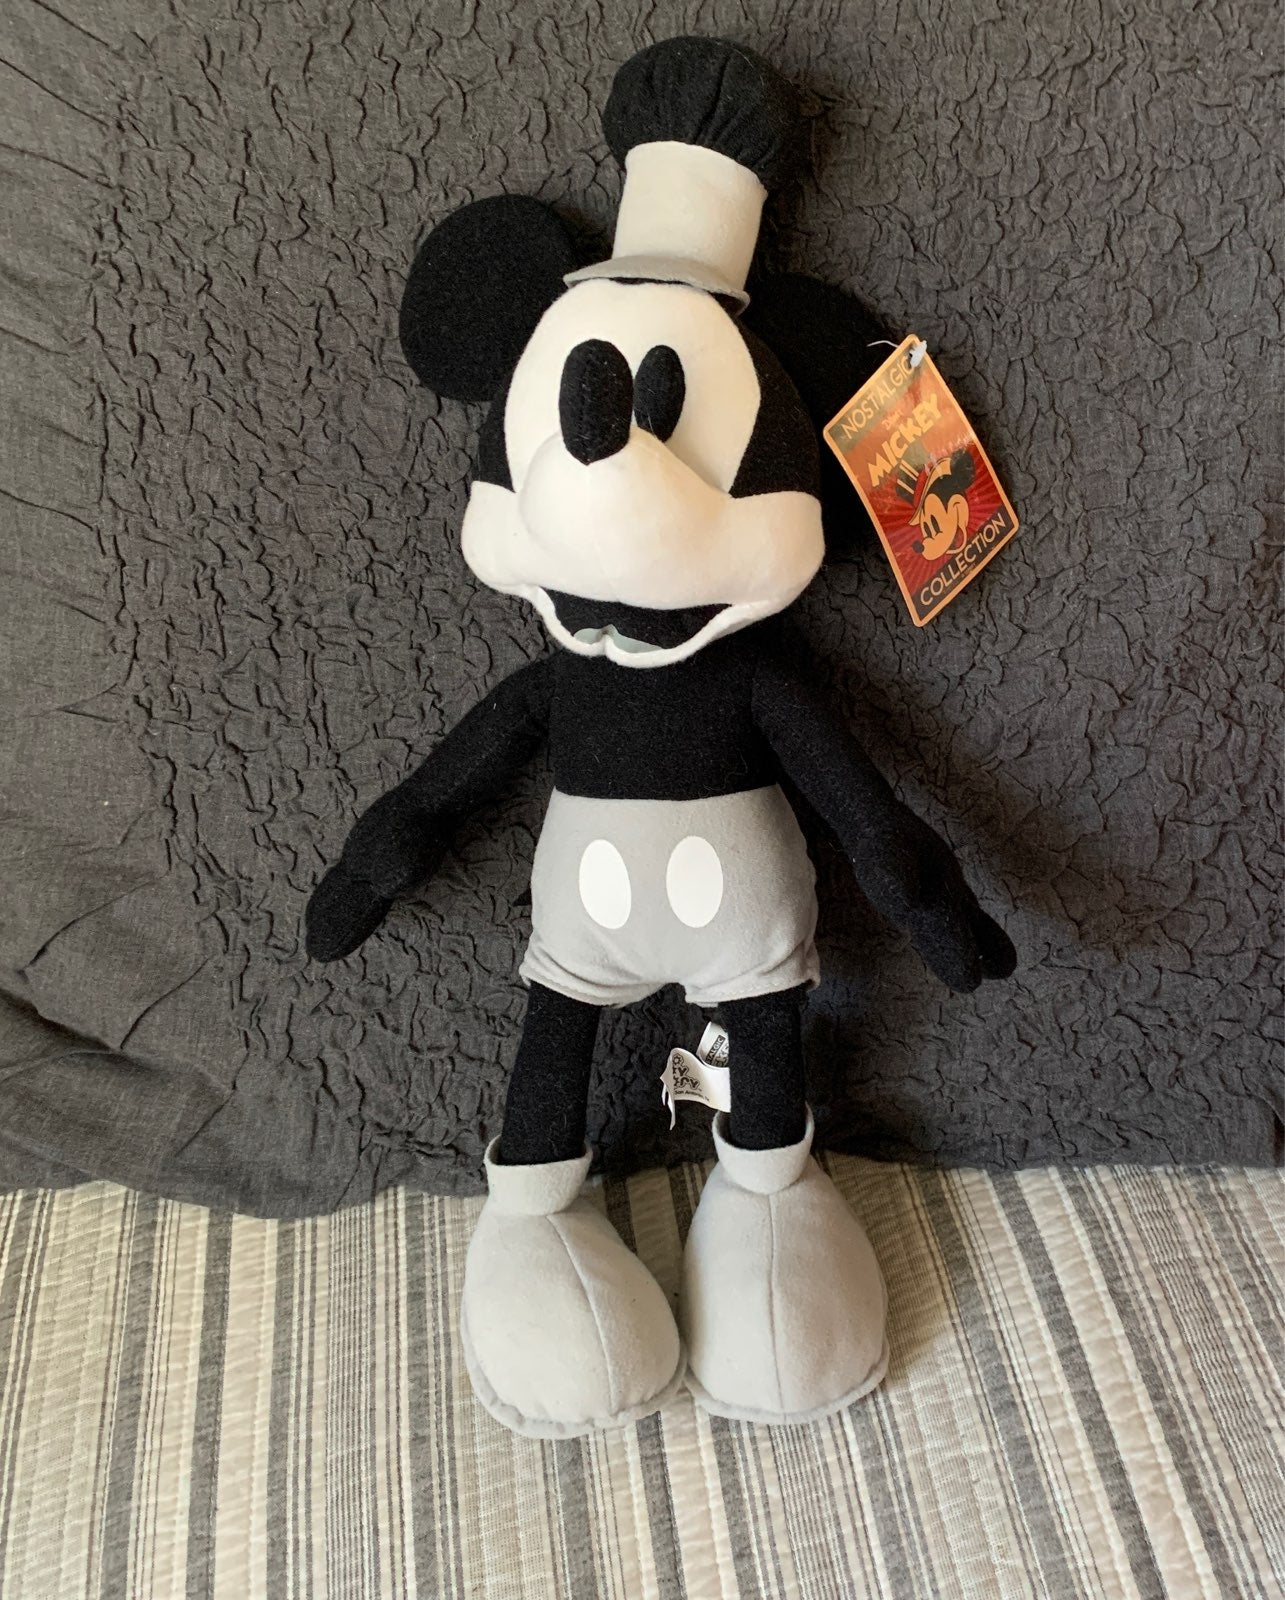 Nostalgia Disney Mickey Steamboat Willie